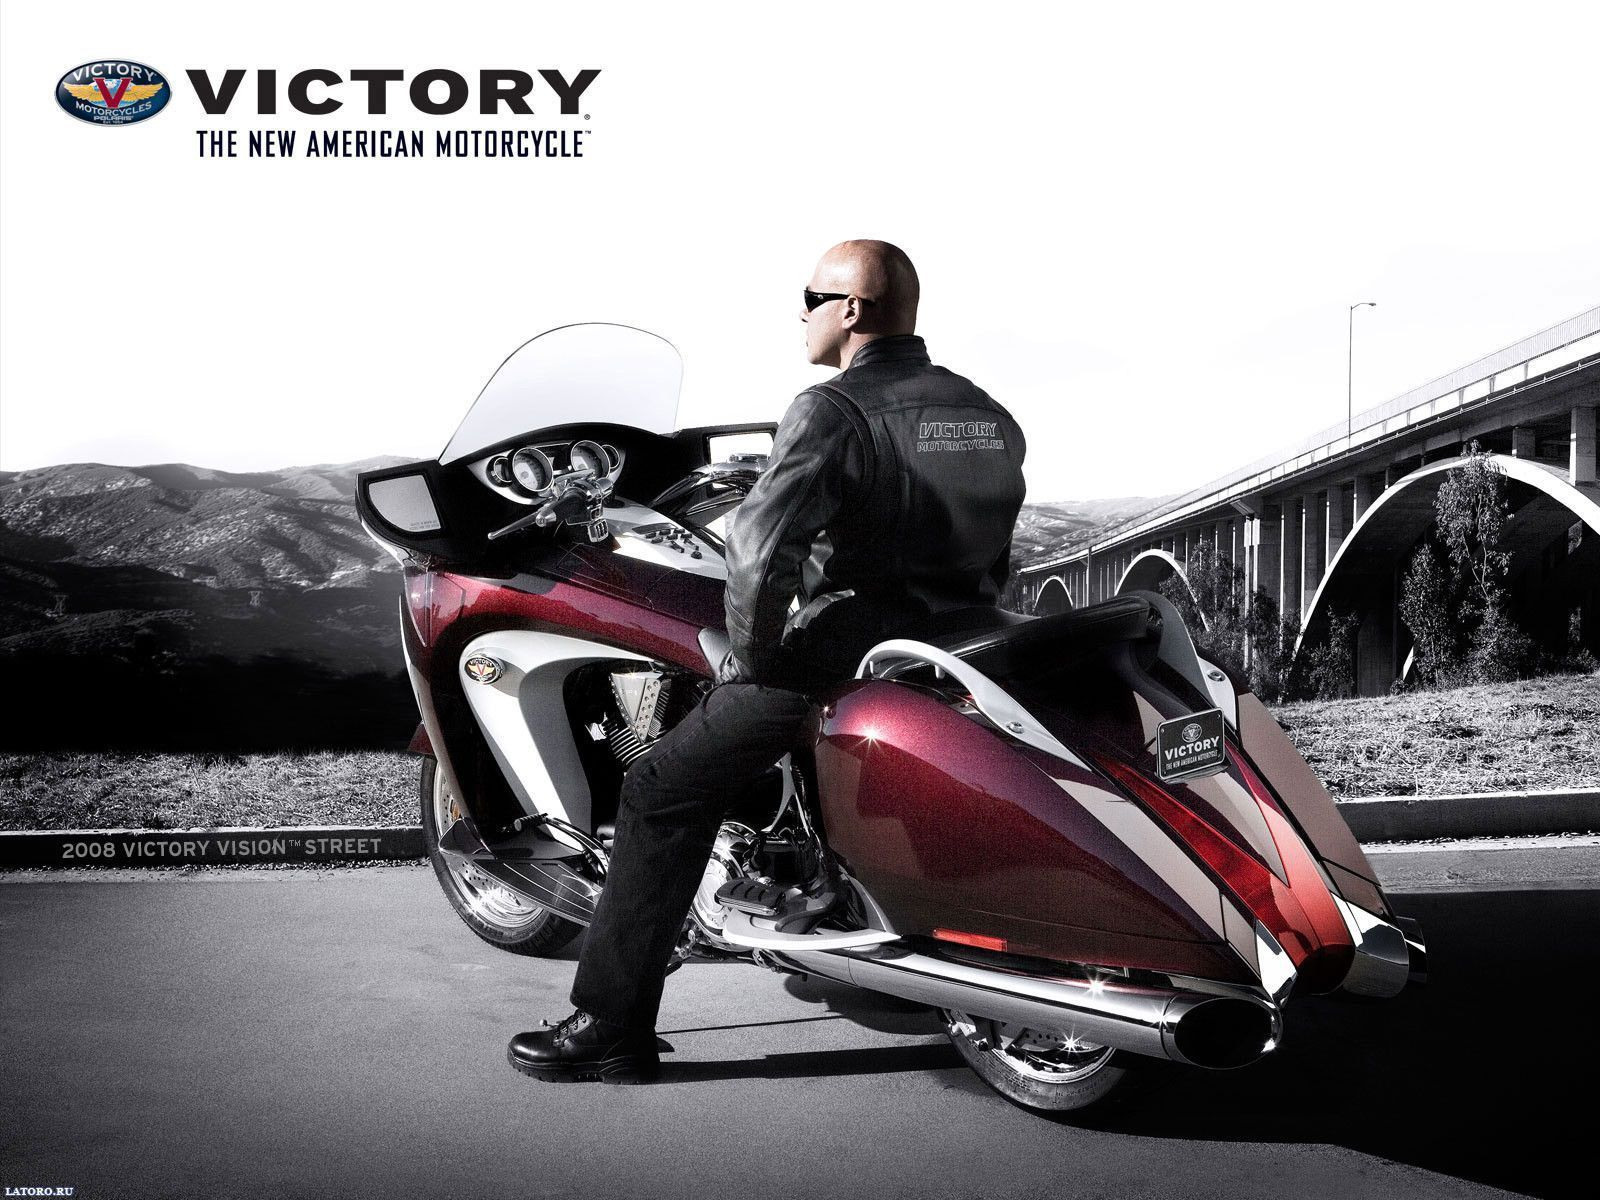 Victory Motorcycle 3d Wallpapers Hd Wallpapers Spy Victory